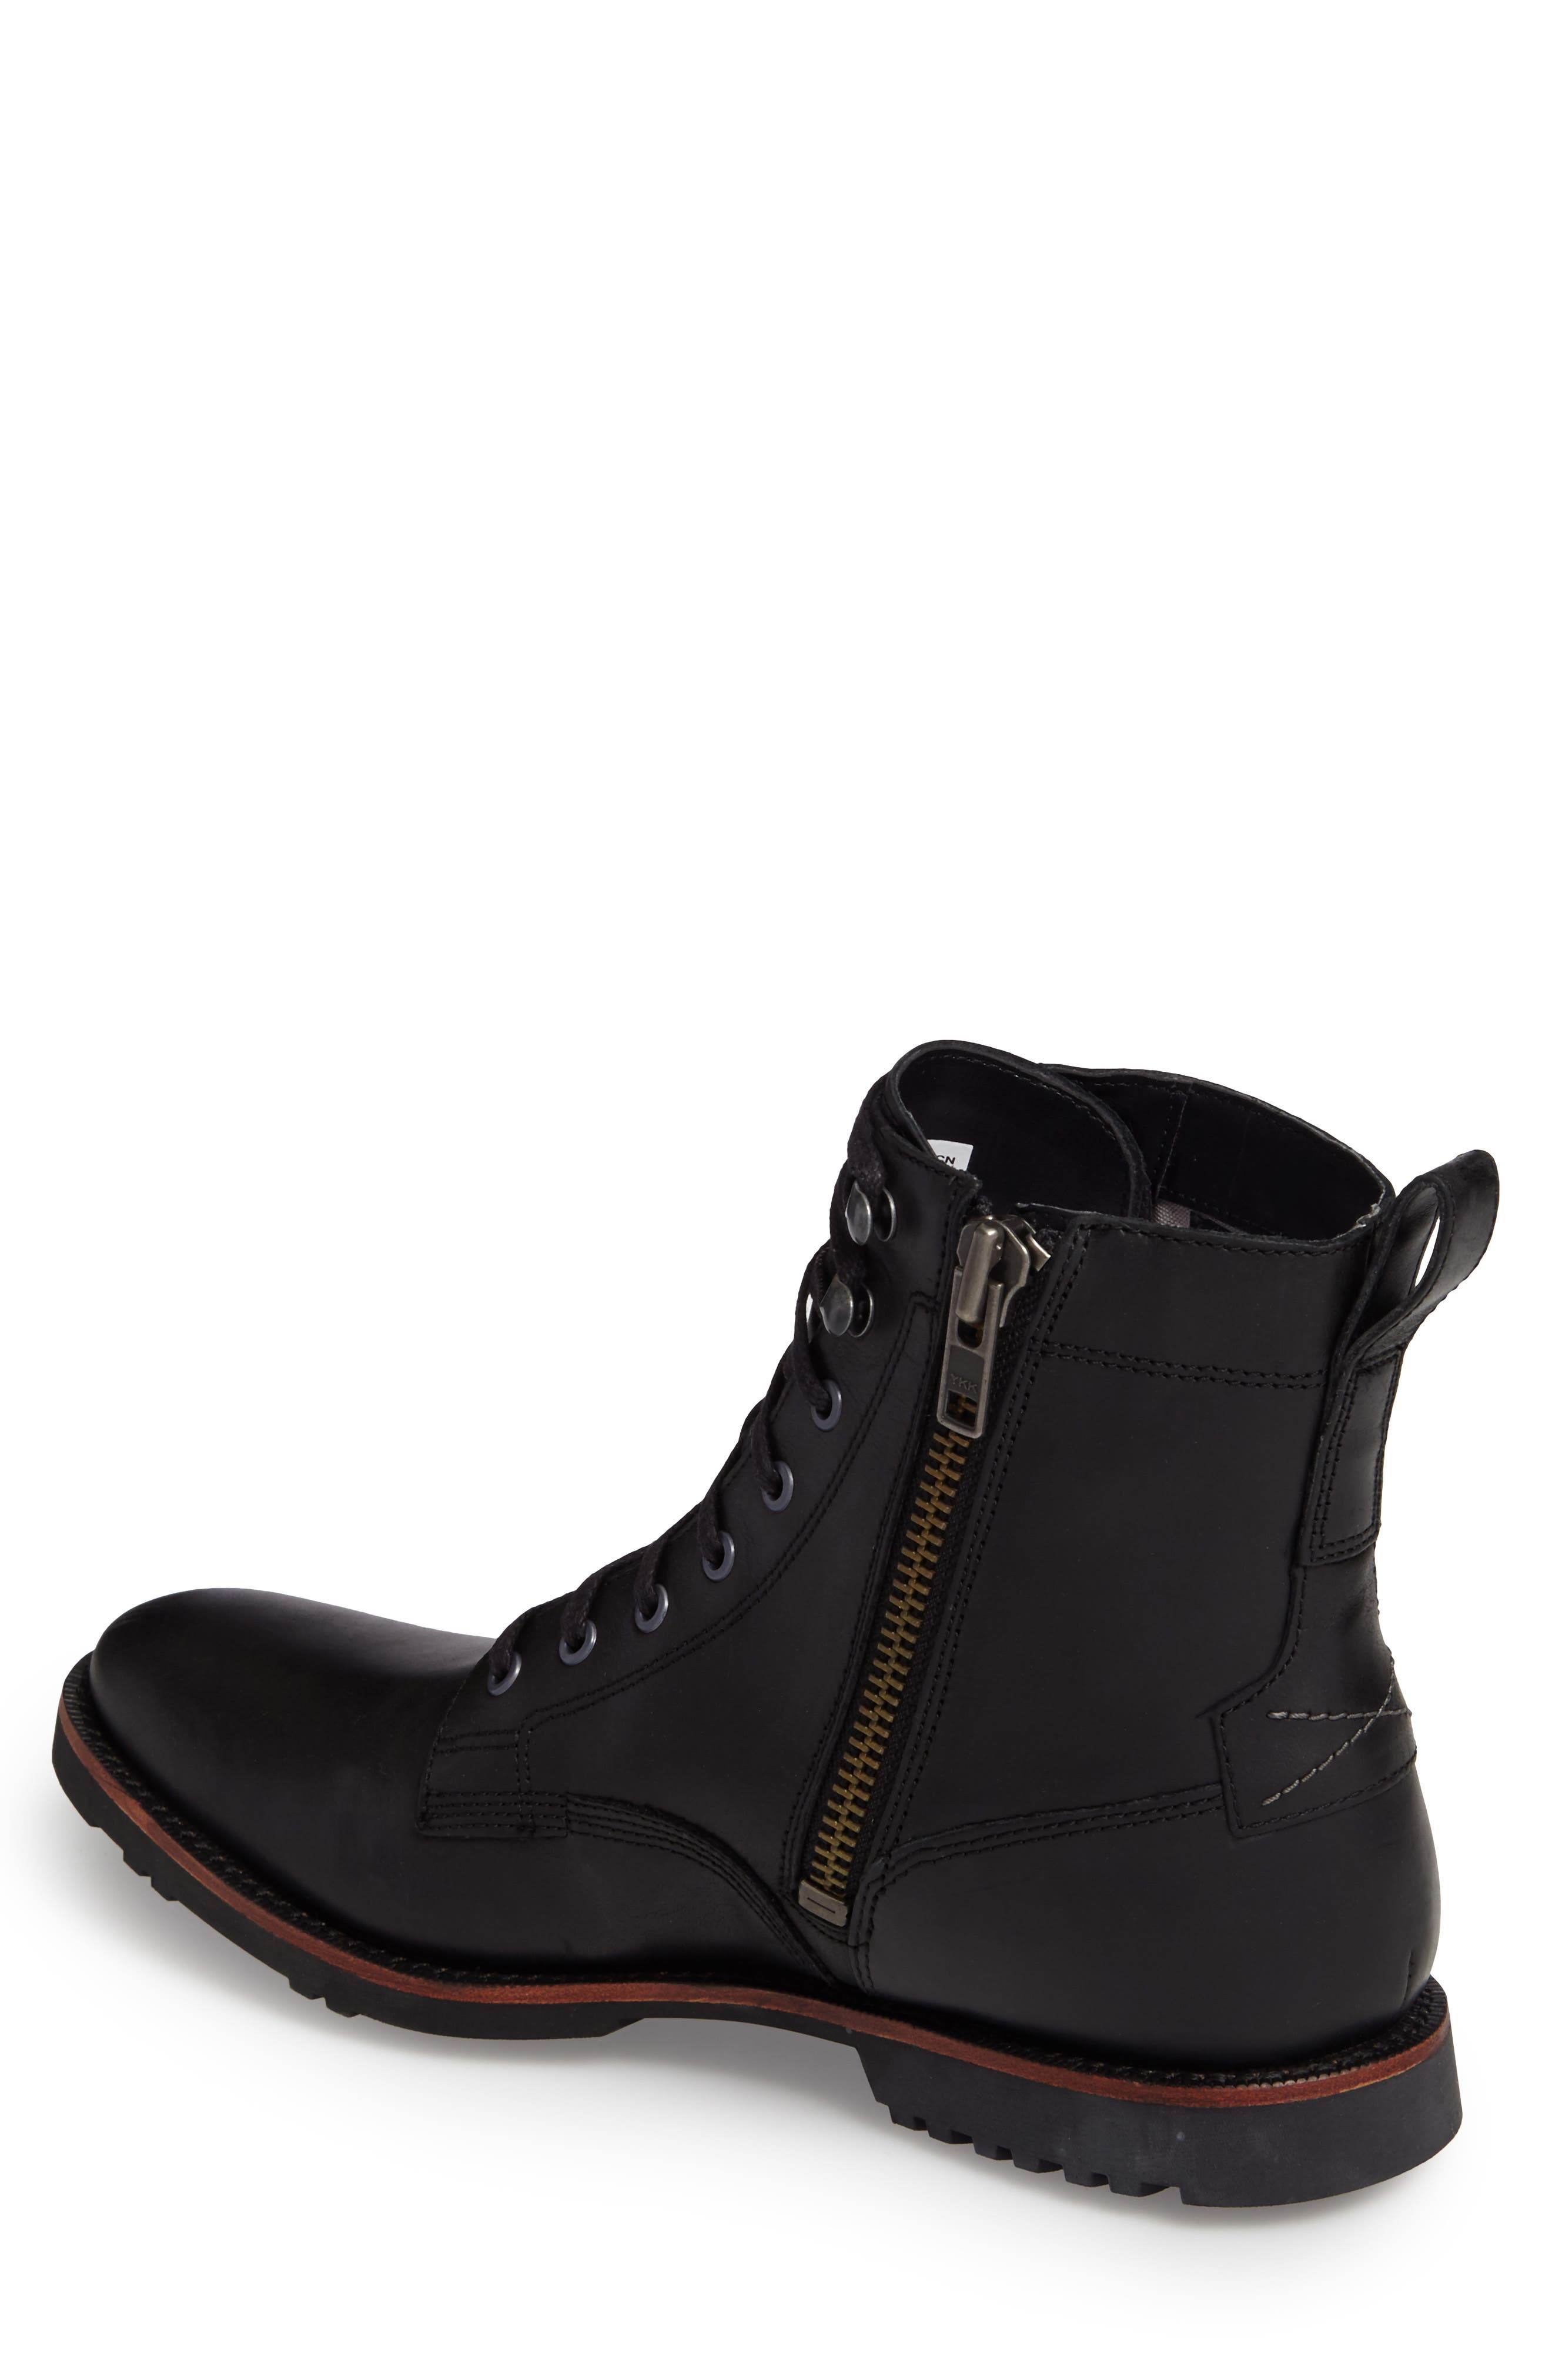 Kendrick Side Zip Leather Boot,                             Alternate thumbnail 2, color,                             001